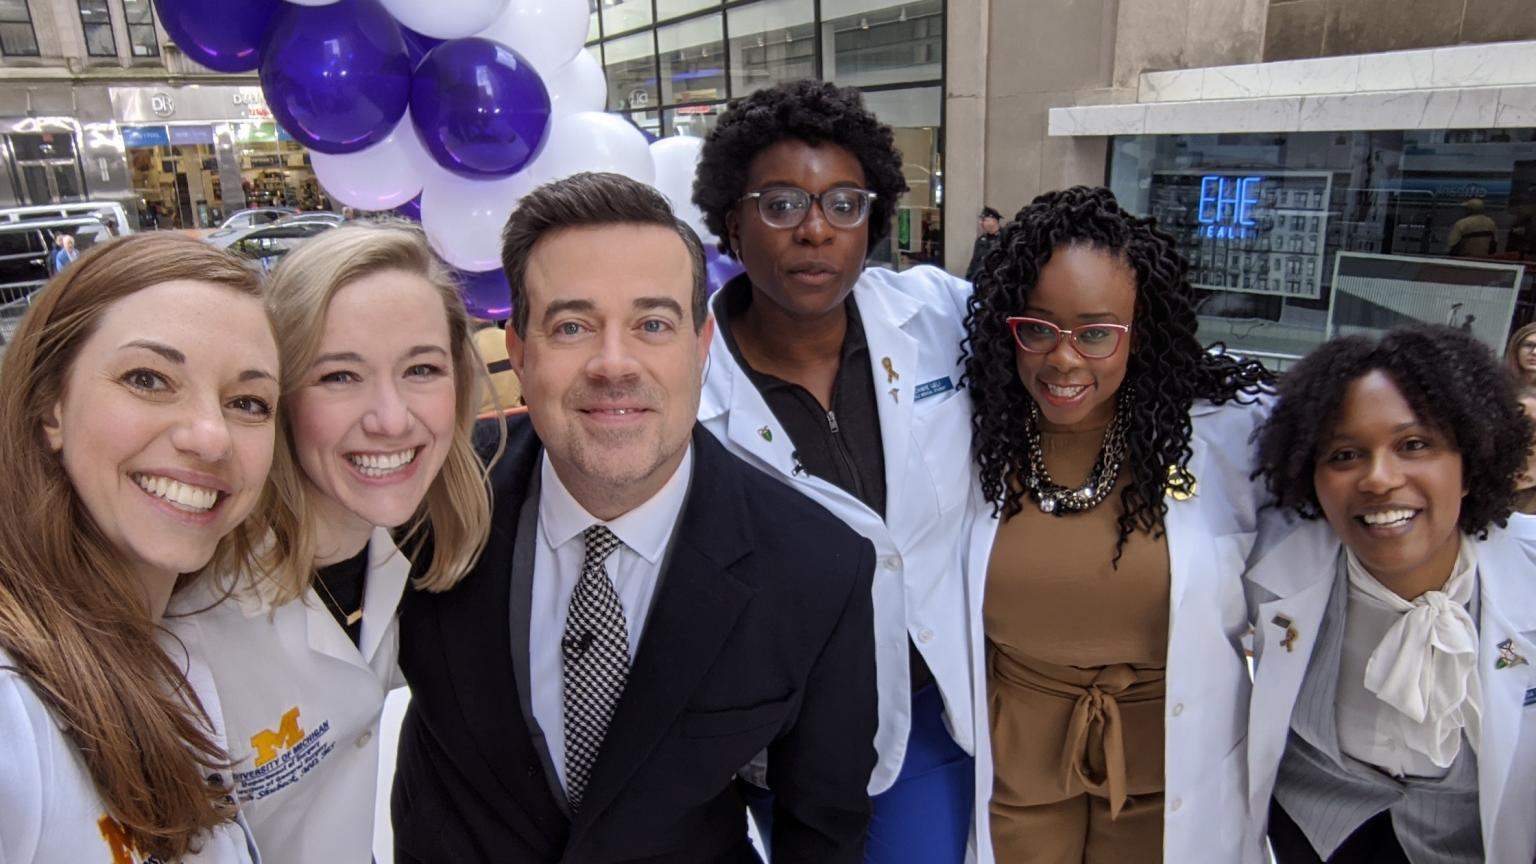 Department of Surgery residents at Good Morning America 2020